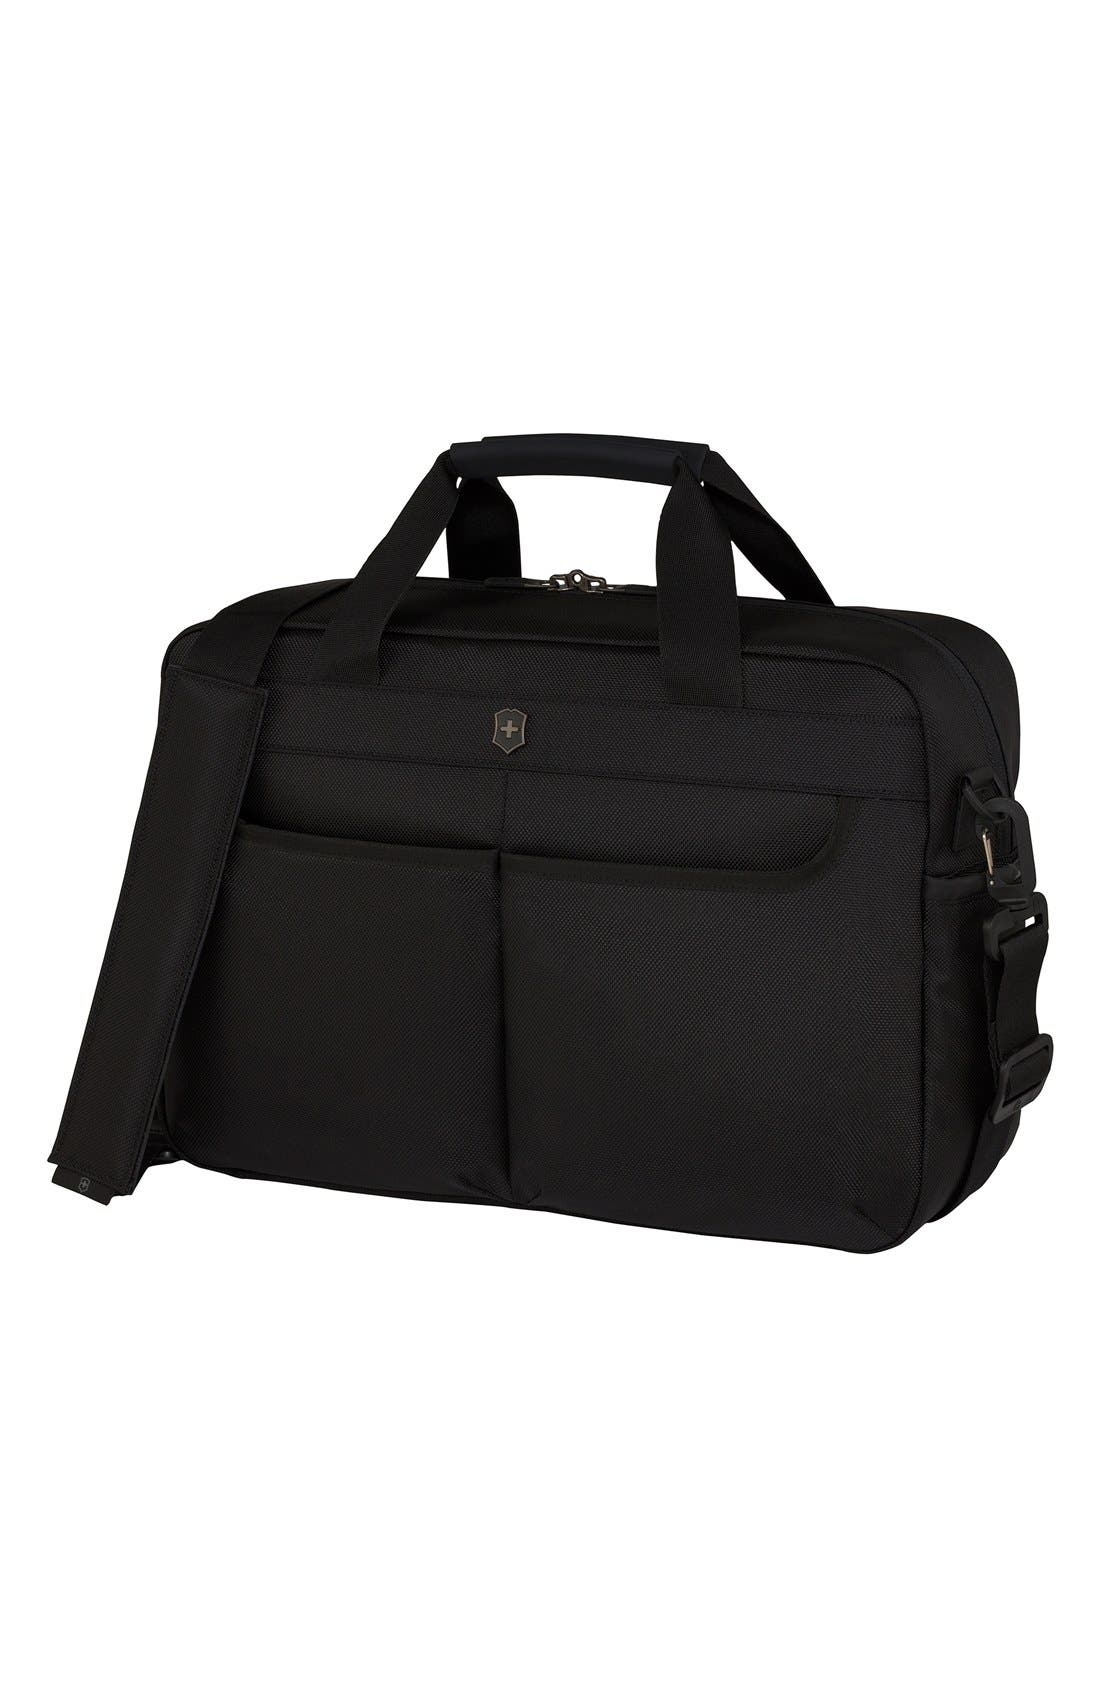 Main Image - Victorinox Swiss Army® 'WT 5.0' Tote Bag